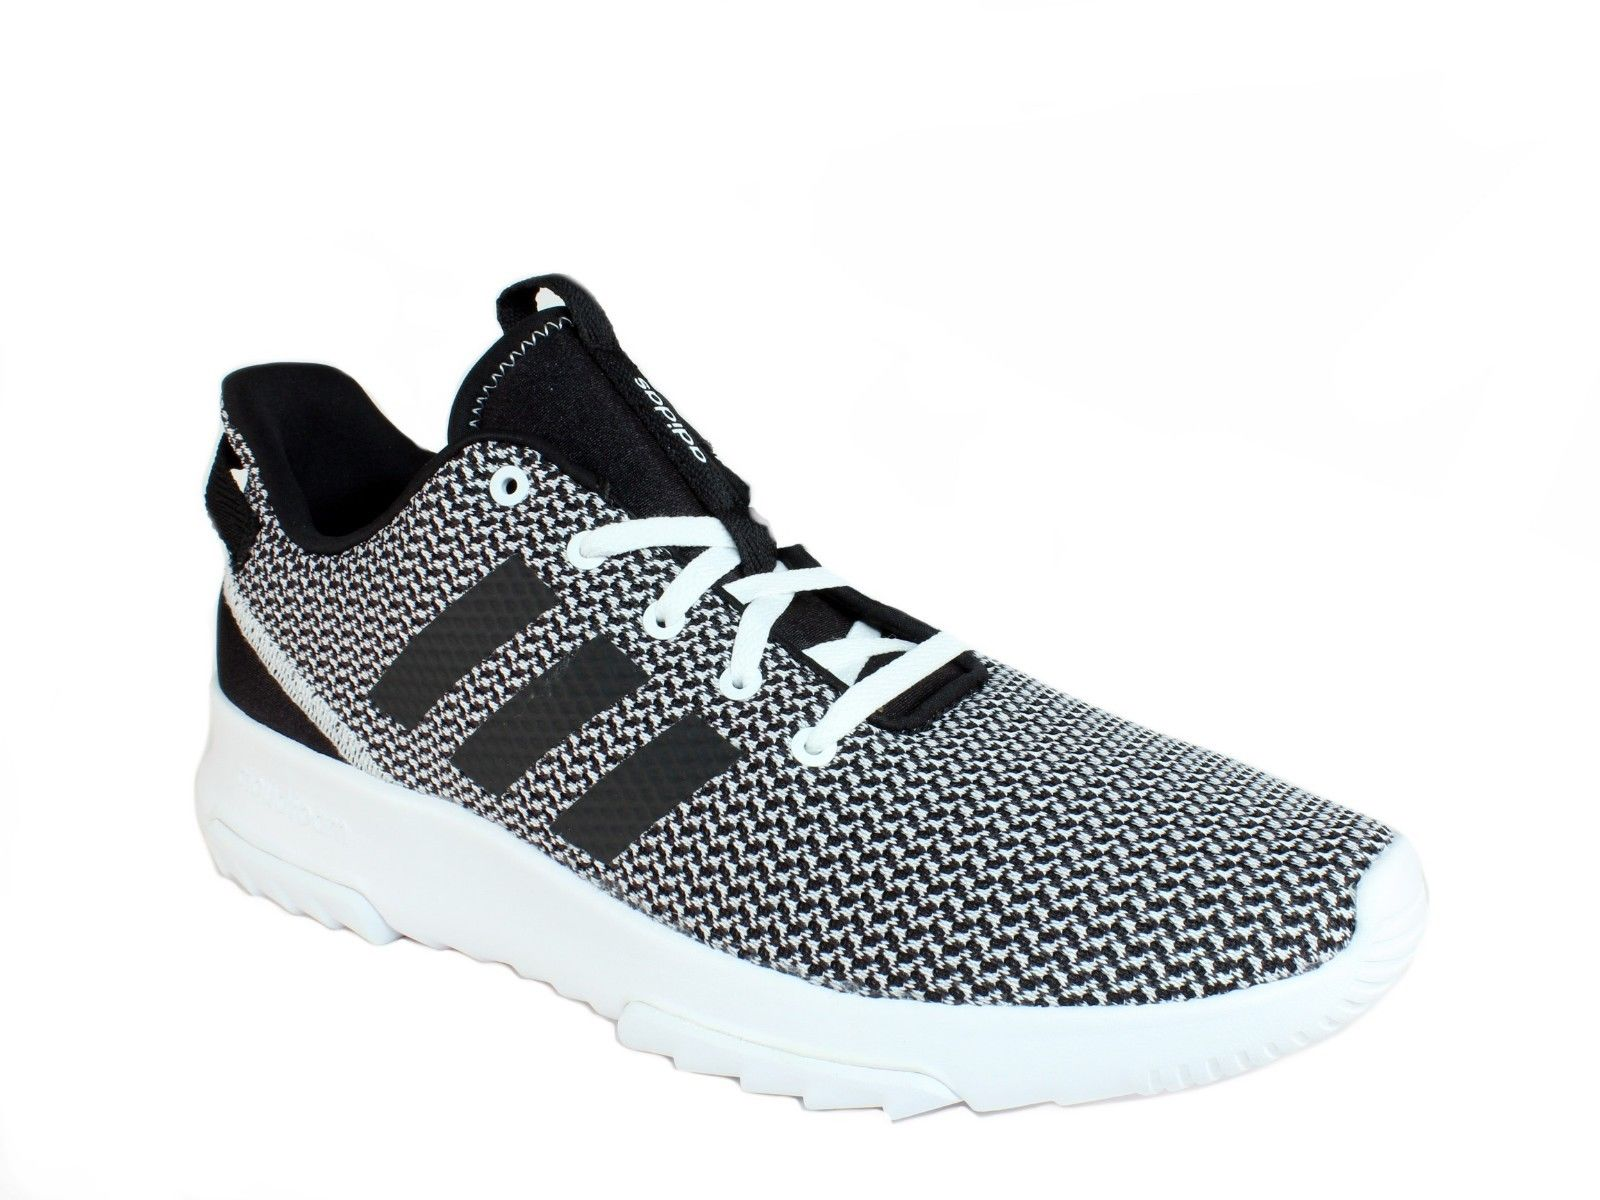 Adidas CF RACER TR Men's Athletic Trail Running Shoes ...